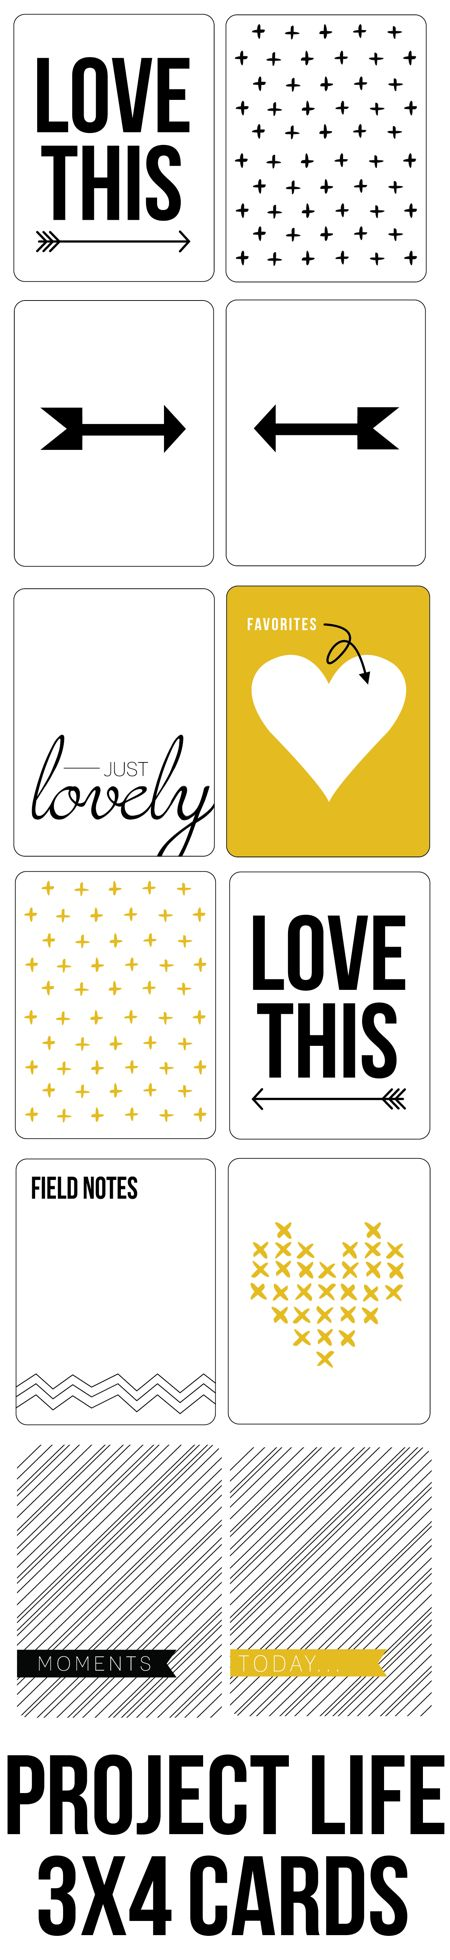 Free Journal Cards for Project Life from Just Izzy Design